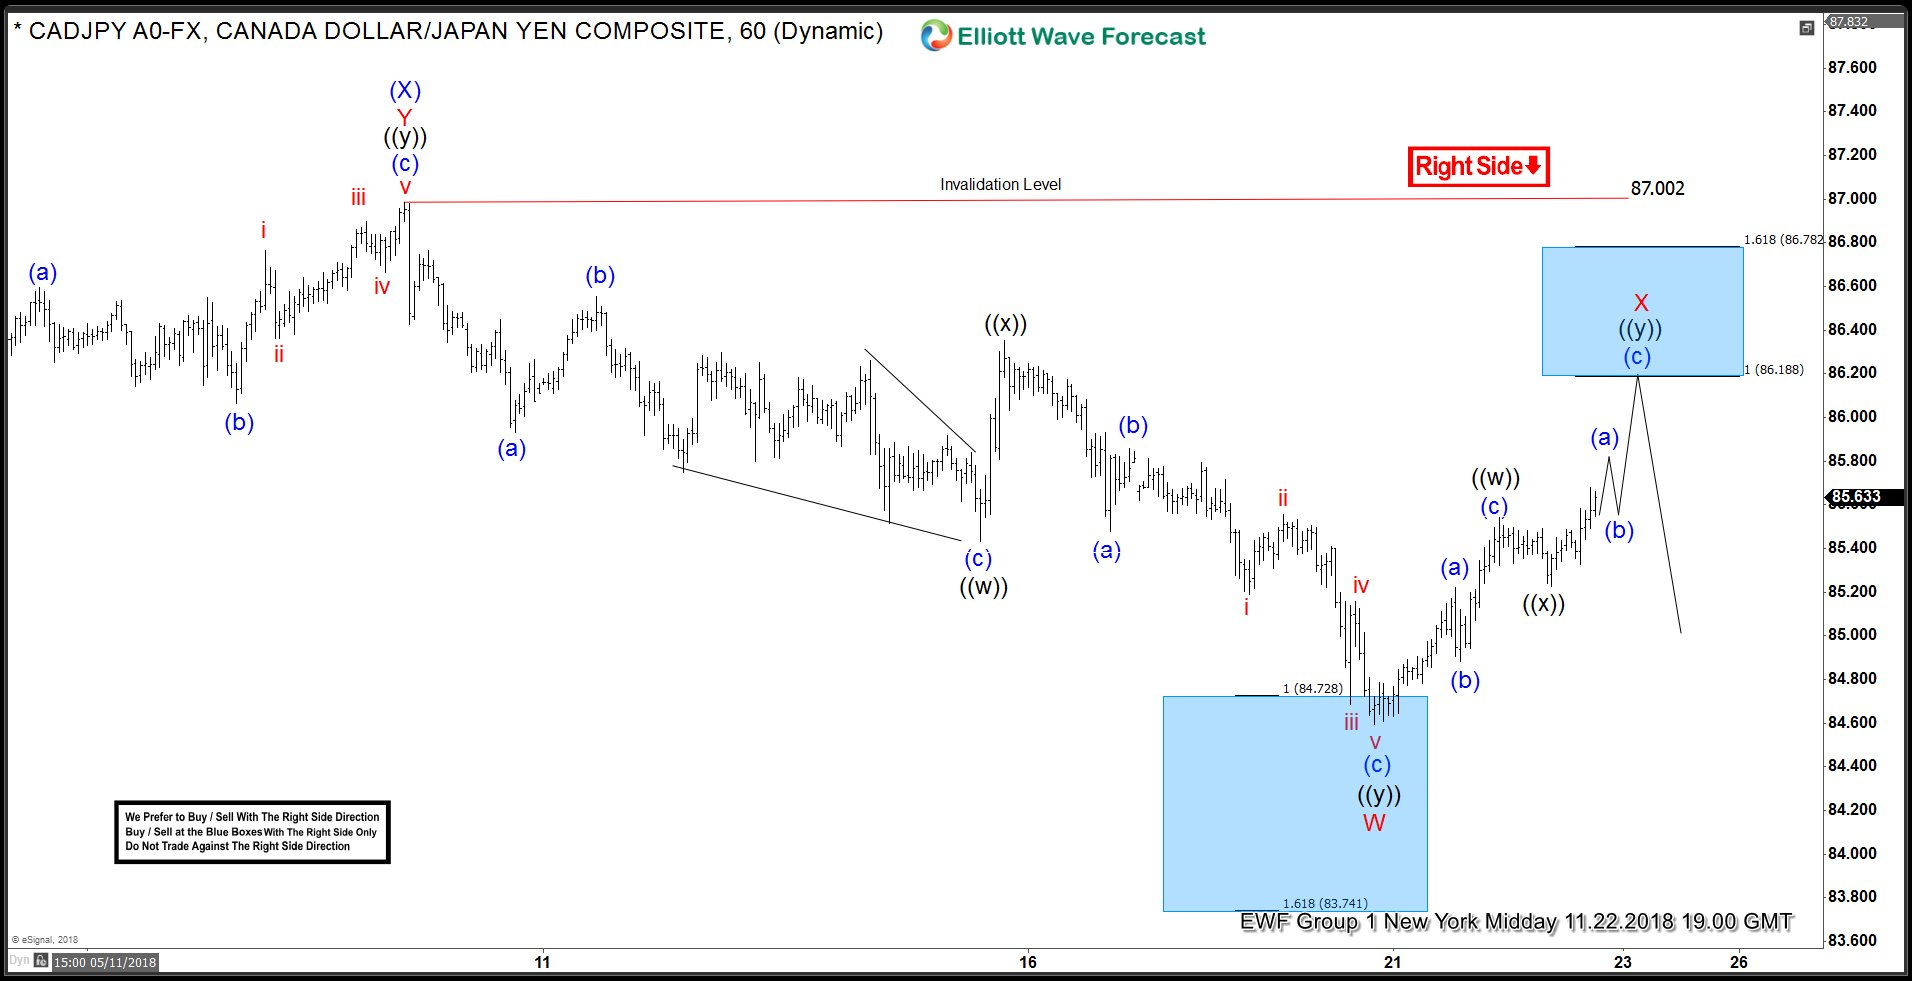 CADJPY 1 Hour Elliott Wave Analysis